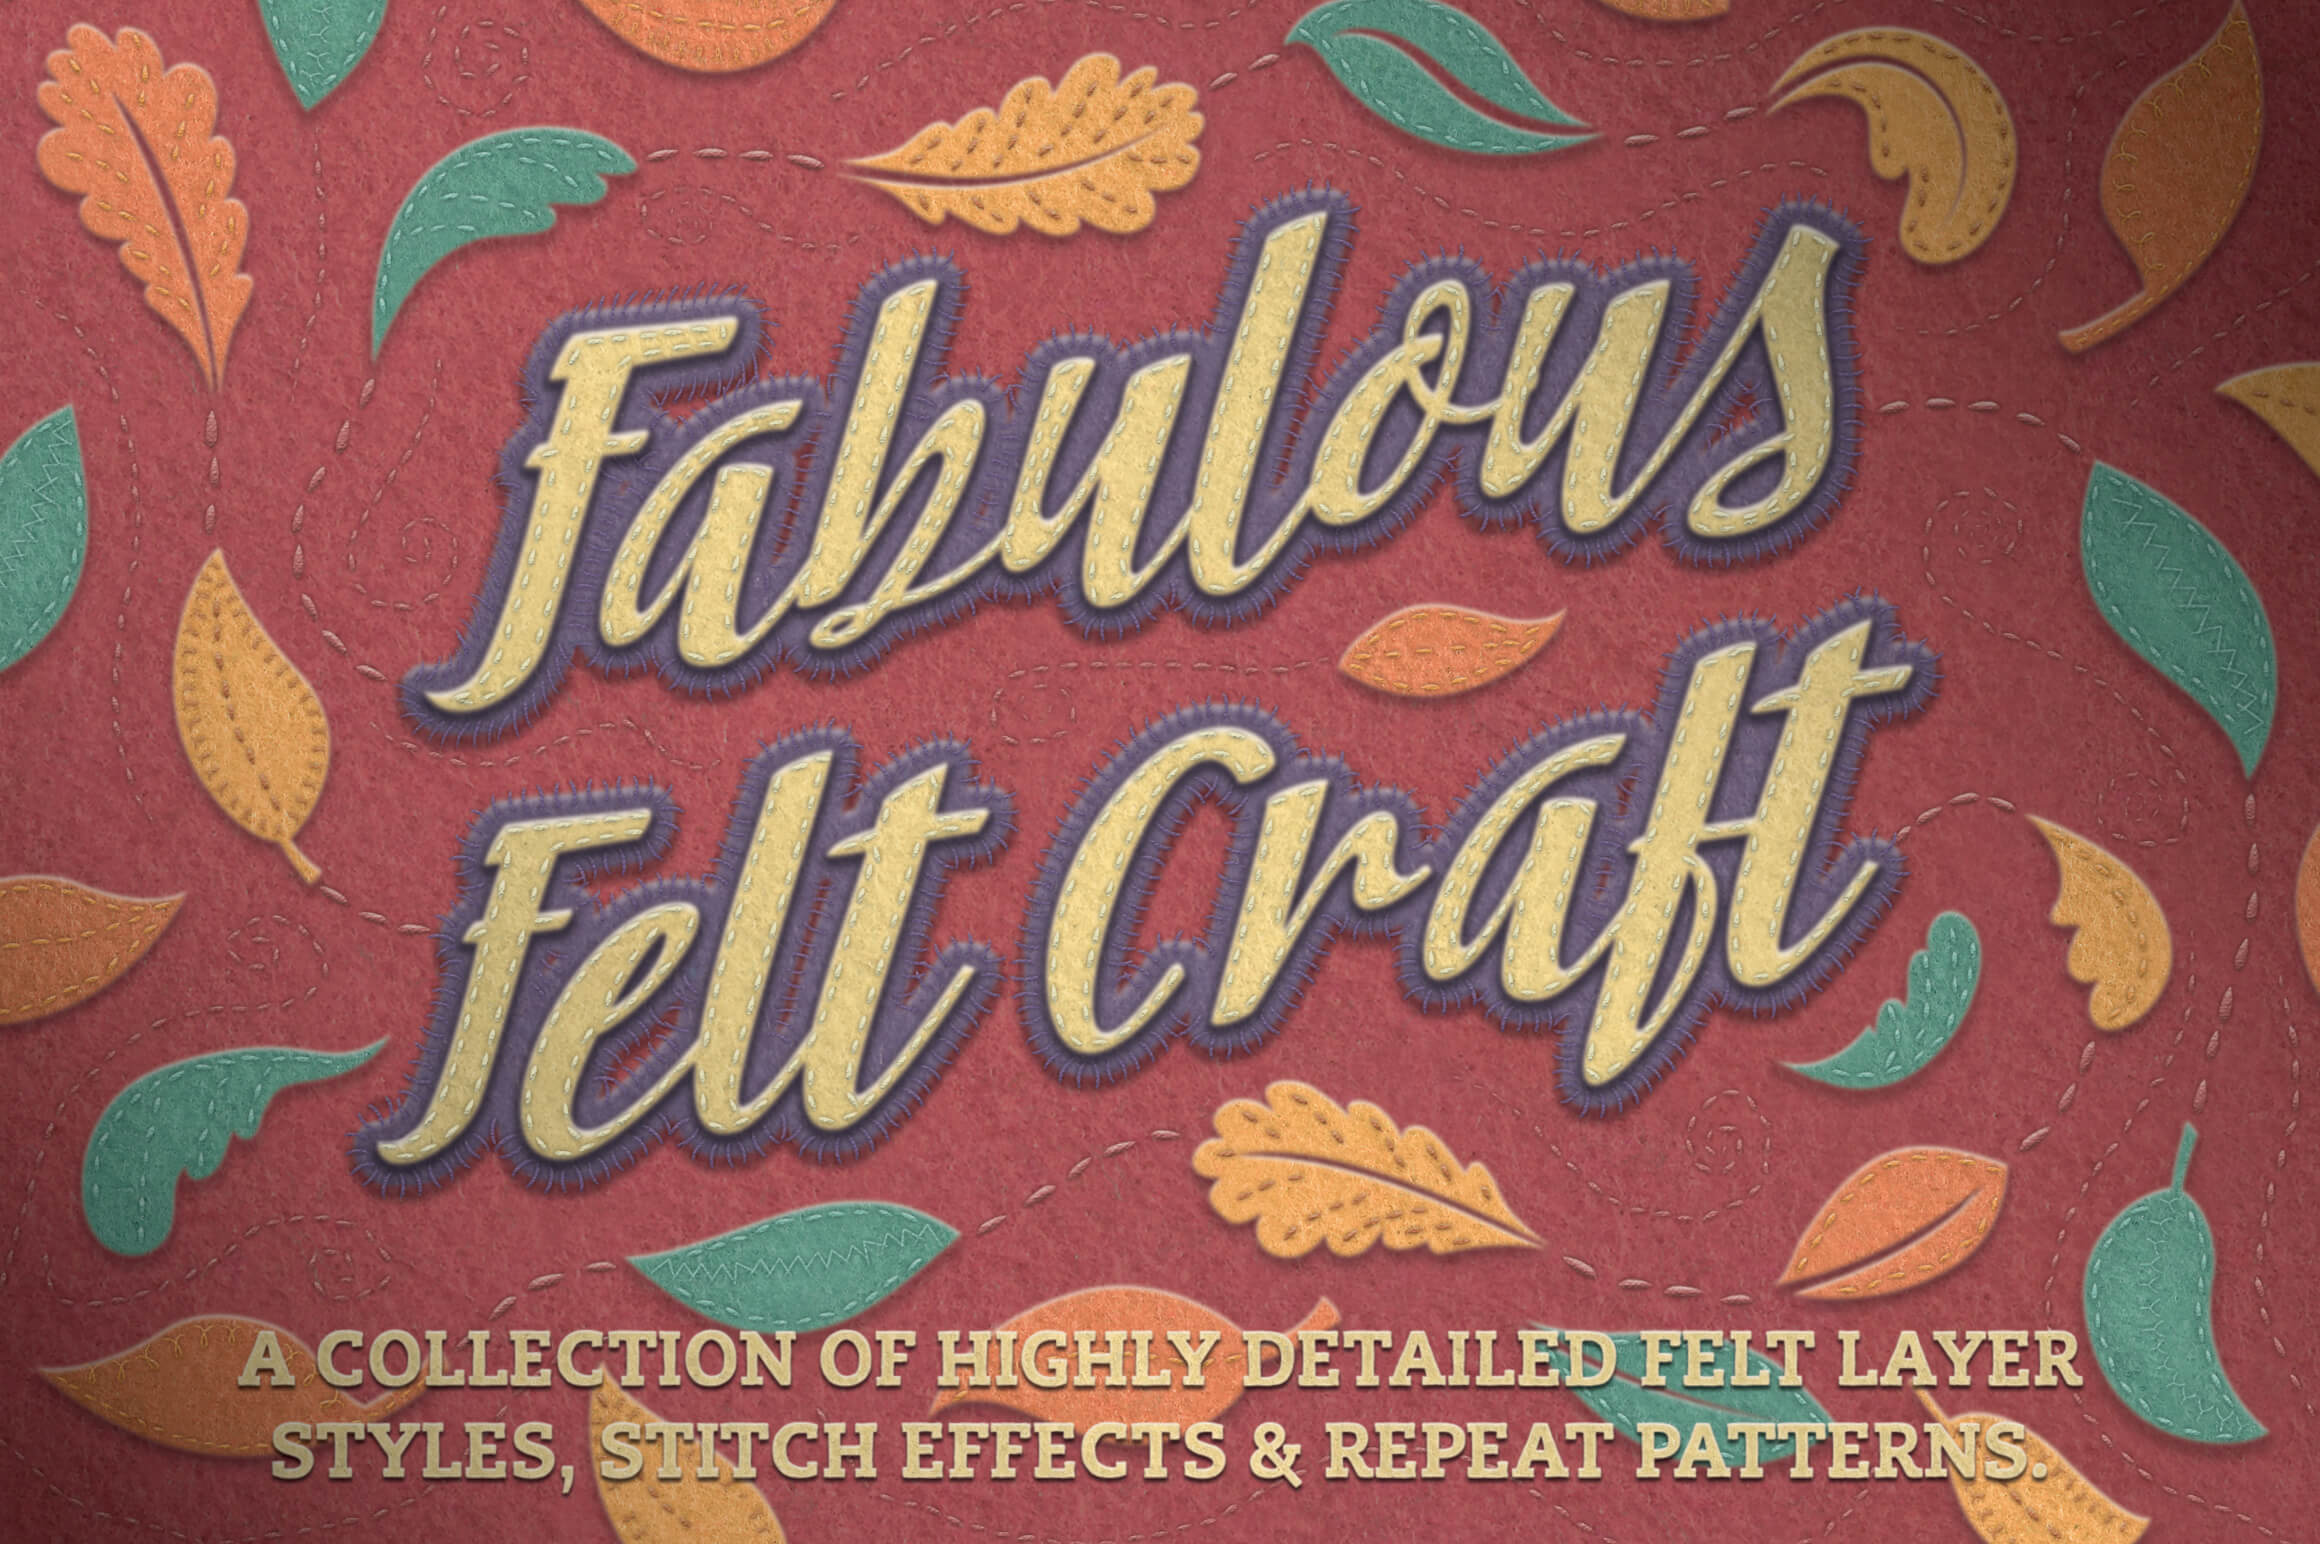 A Collection of 32 Photoshop Felt Styles & 10 Stitch Effects – only $7!